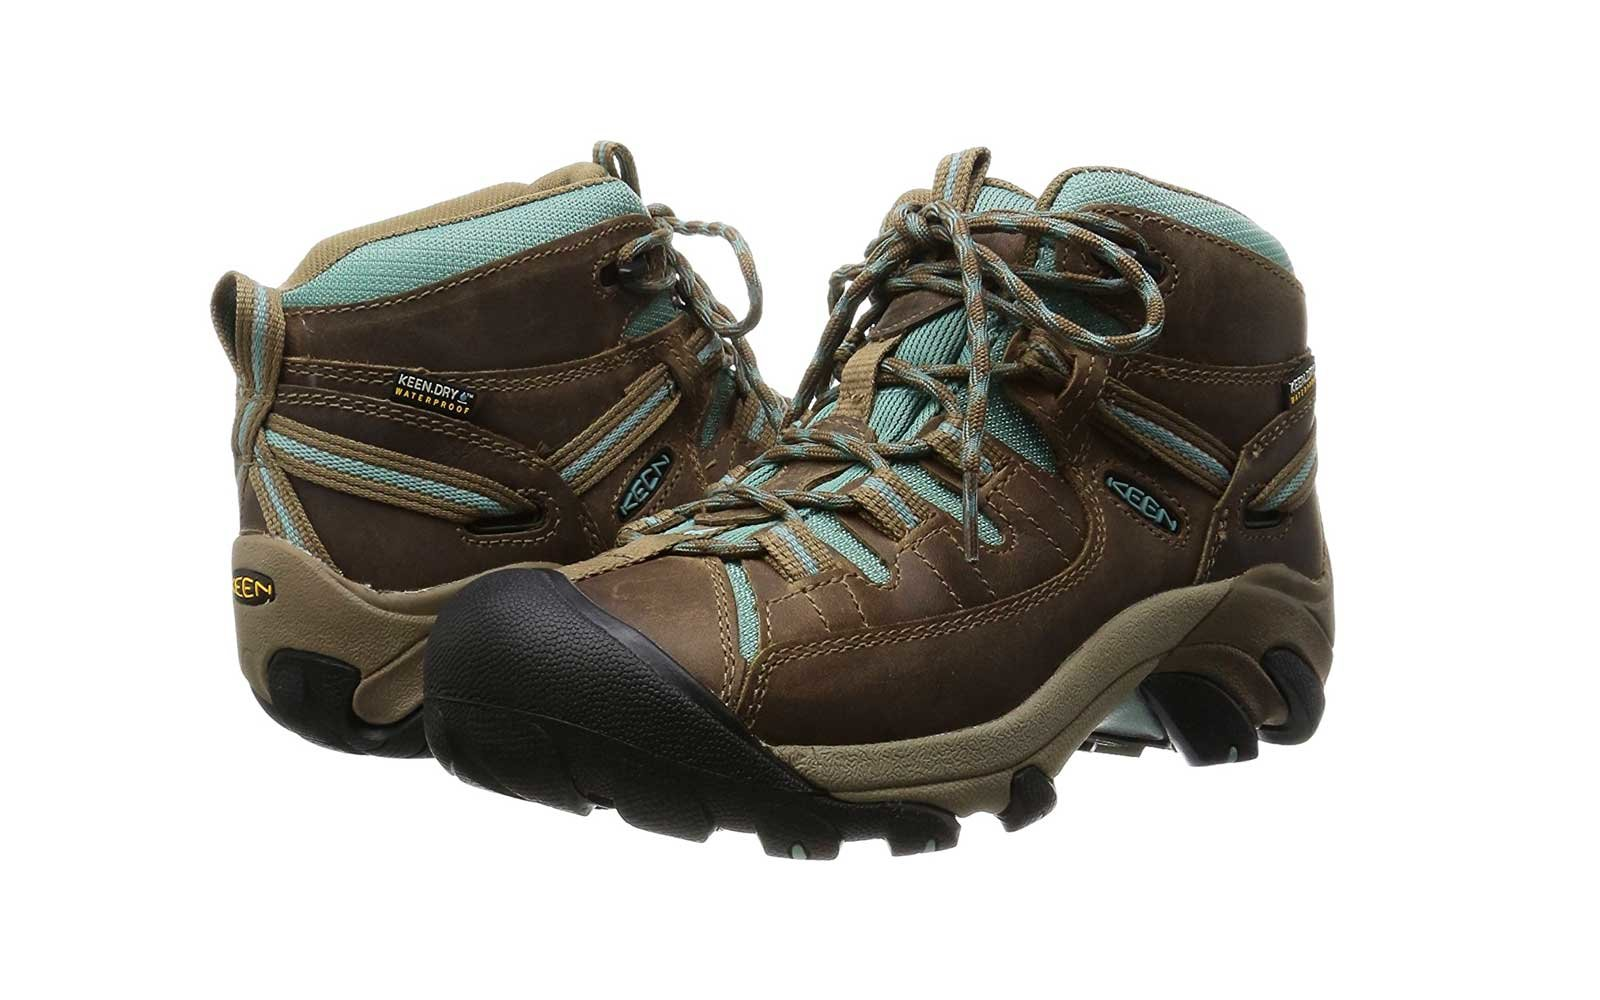 Best Hiking Shoes and Boots for Women | Travel + Leisure